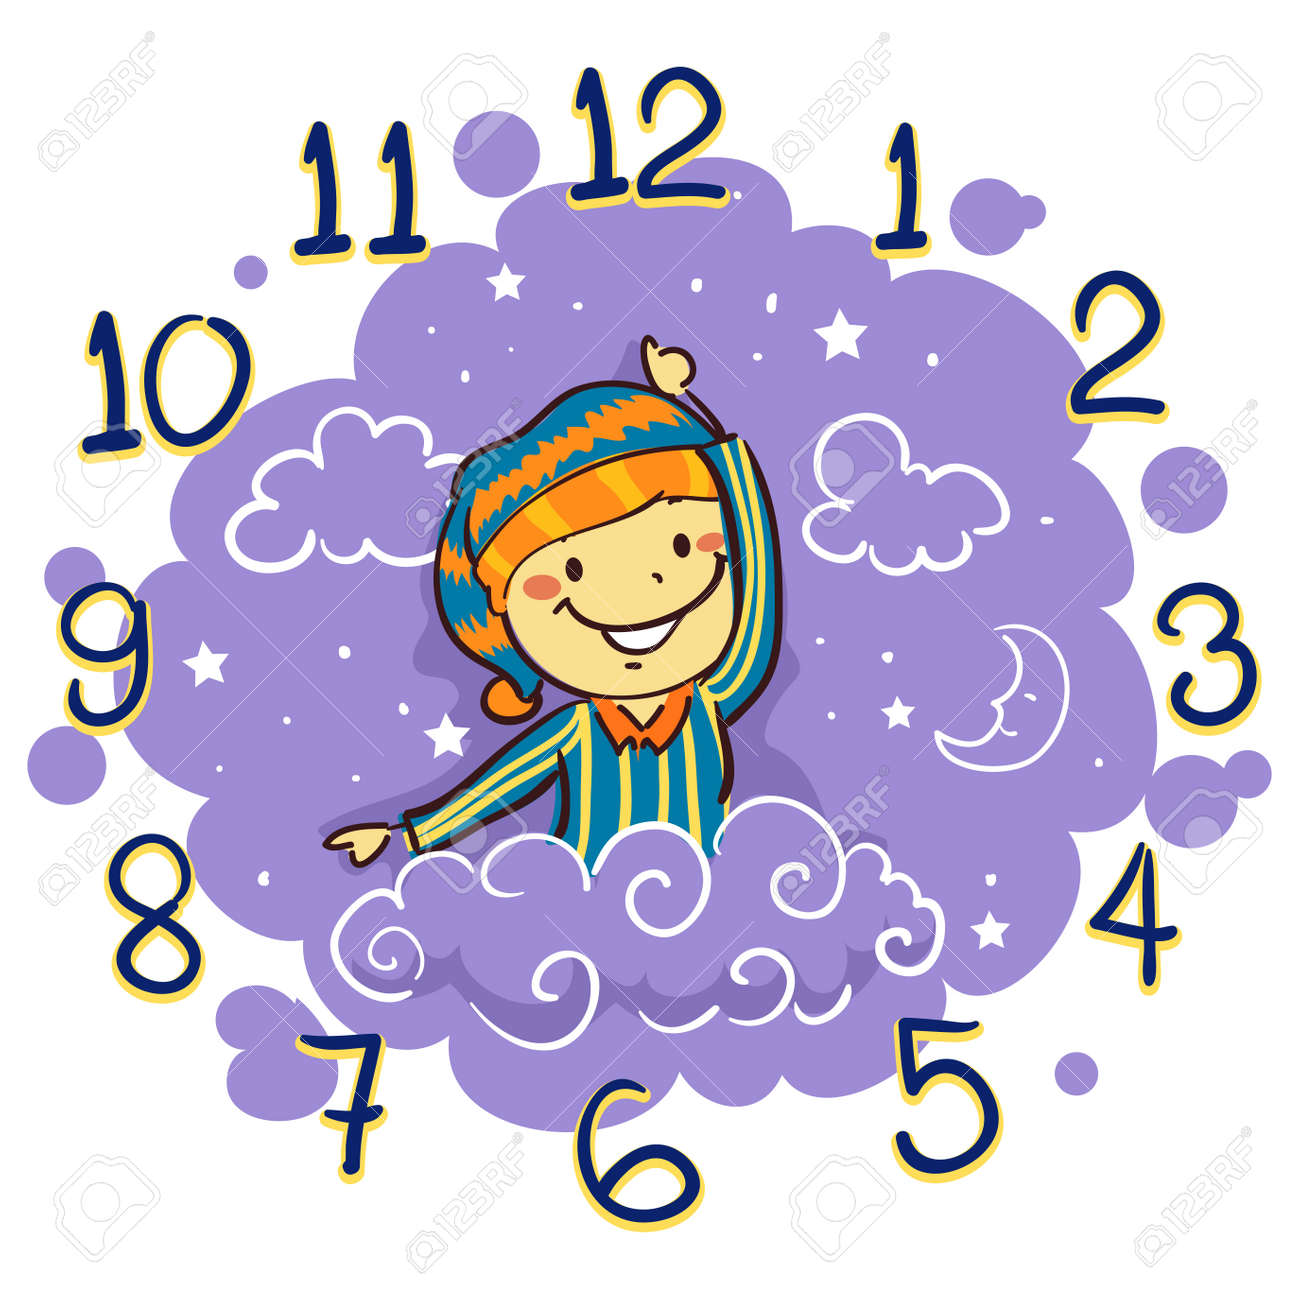 vector illustration of kid using his arm as hand clock for bedtime rh 123rf com clipart bedtime story bedtime stories clipart